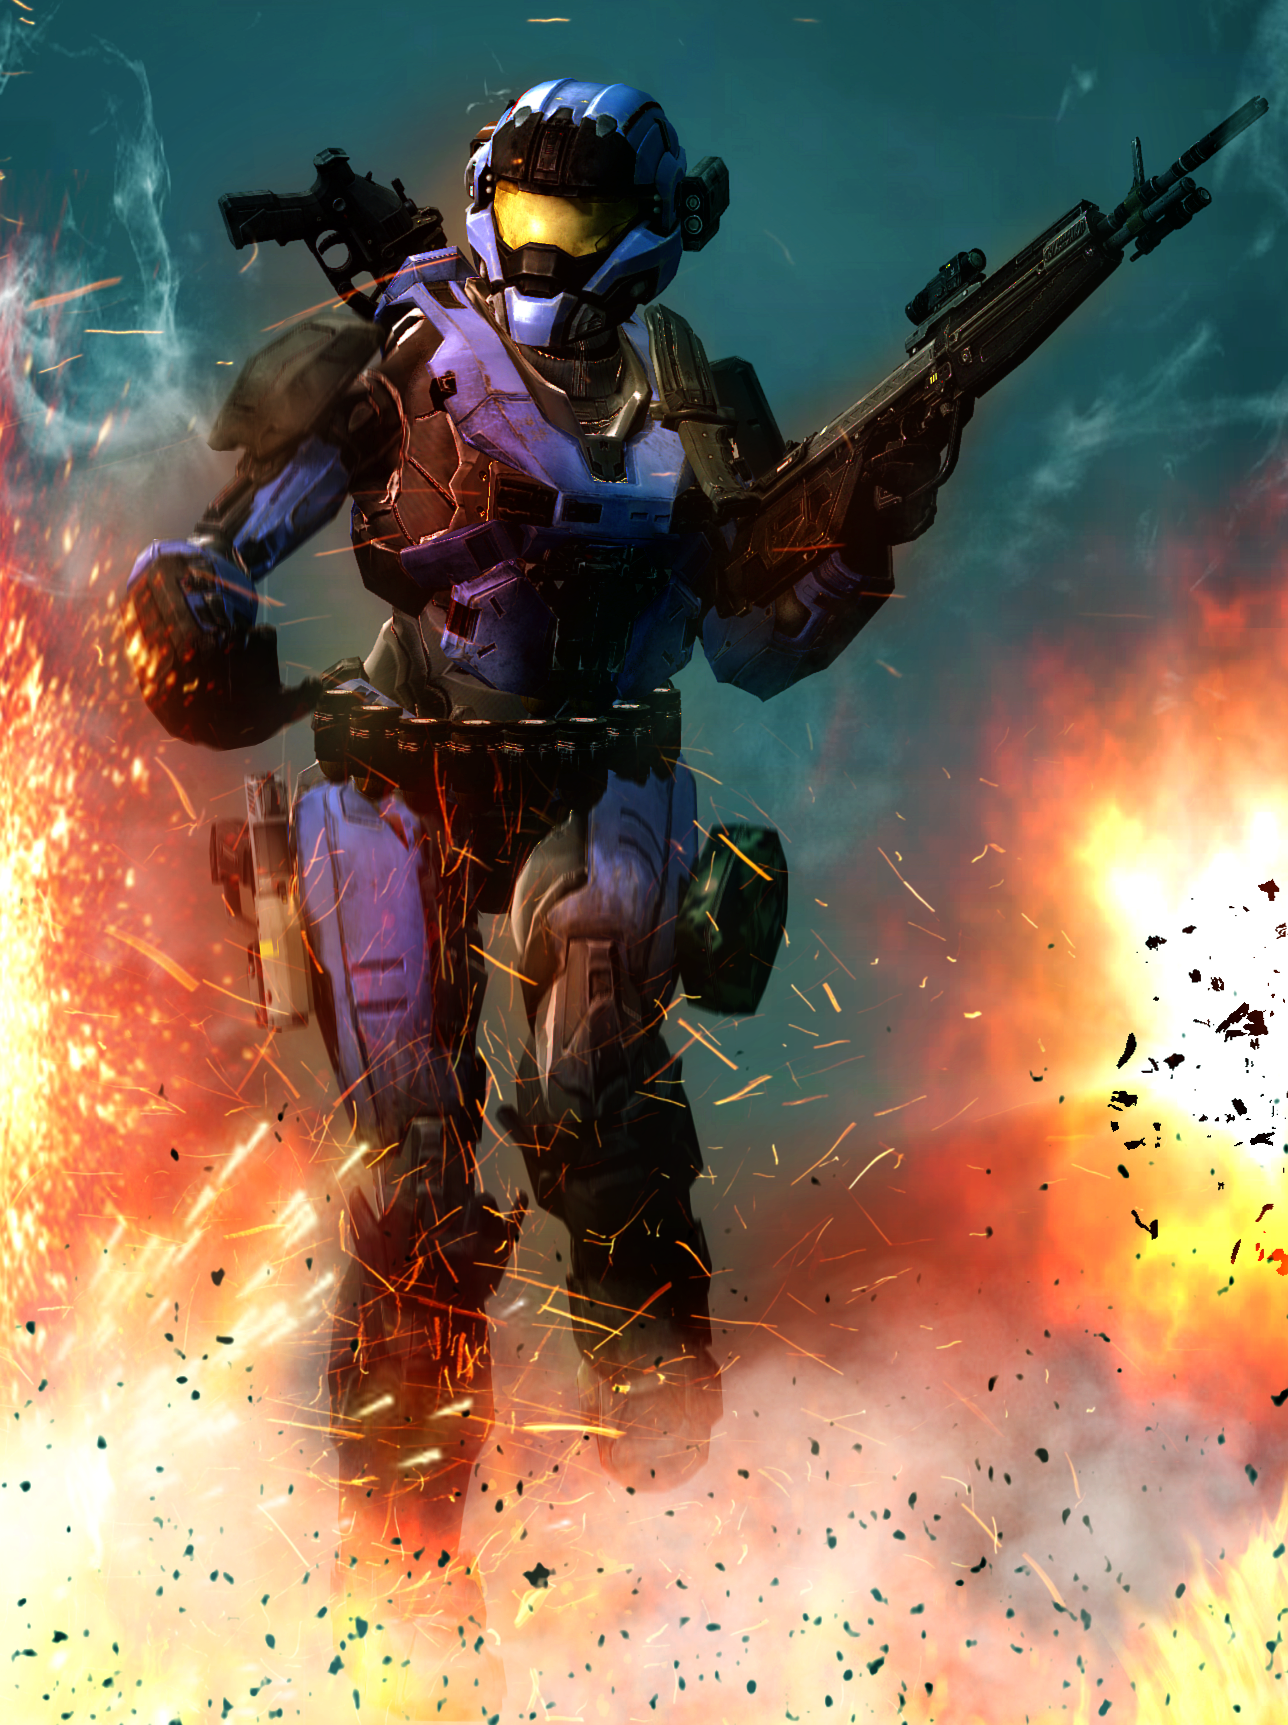 female_spartan_s_courage_by_lordhayabusa357-d6kuqiy.png 1,288×1,725 pixels